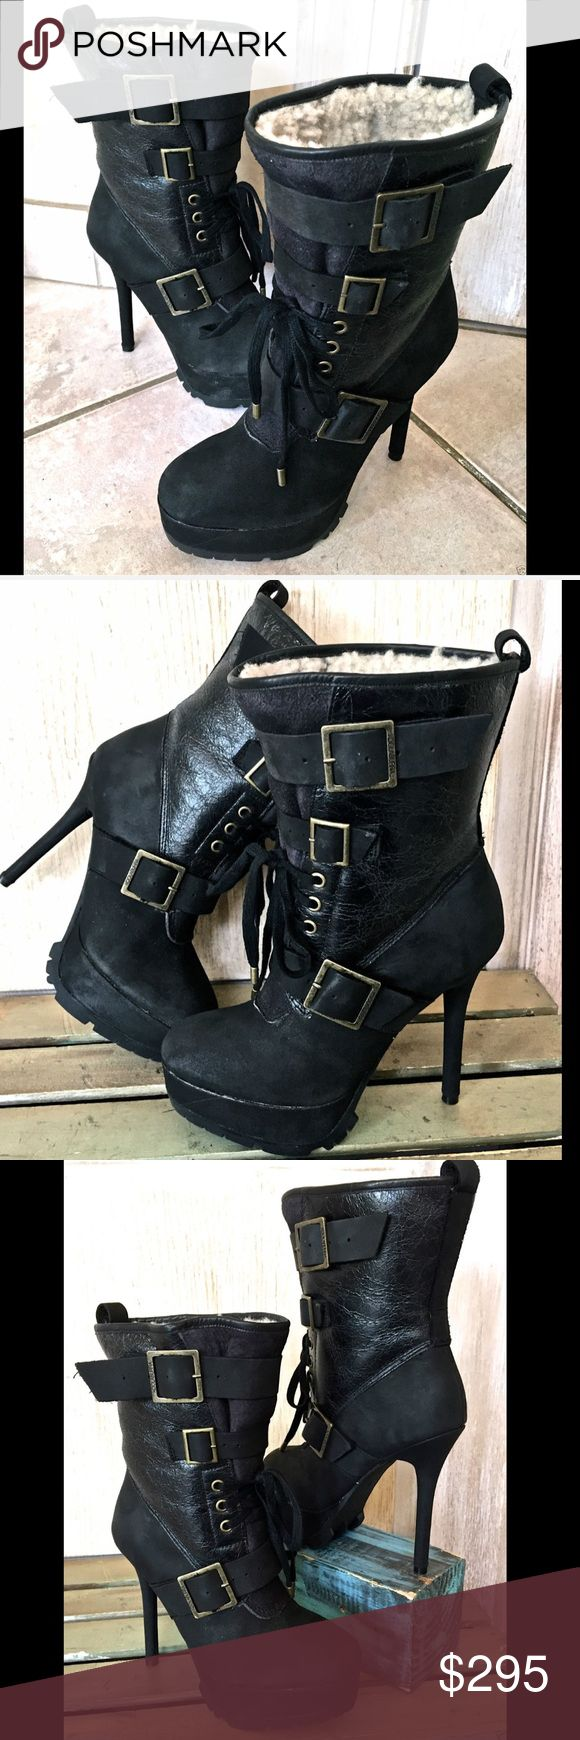 """Koolaburra  Heel Biker Boot Distressed Leather 5 Koolaburra Women's Jaden High Heel Biker Boot in Black Distressed Leather  as seen on KIM KARDASHIAN rubber sole Shaft measures approximately 6.5 from arch Boot opening measures approximately 15 around Upper: Spanish Merino/Leather Accents Fits : True to Size New In Box  *   Size:  5 M retail price: $395.00  measures: 5"""" stiletto heel koolaburra Shoes Heeled Boots"""